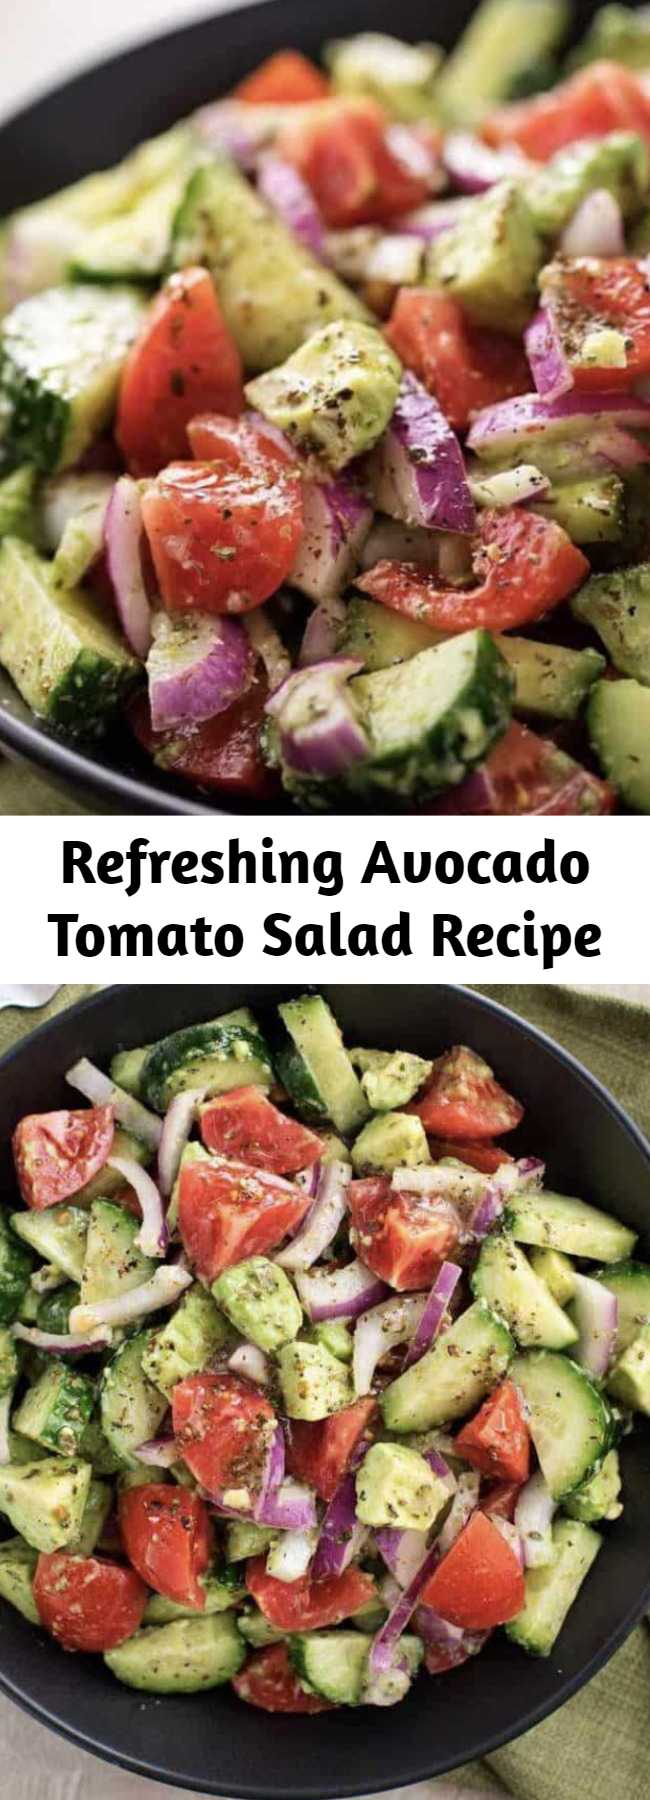 Refreshing Avocado Tomato Salad Recipe - This fresh and delicious Avocado Tomato salad recipe is made with cucumbers, tomatoes, and avocados mixed in with a unique and flavorful dressing. So refreshing, perfect for the summer and pairs well with any meal as a side dish or enjoy on its own!